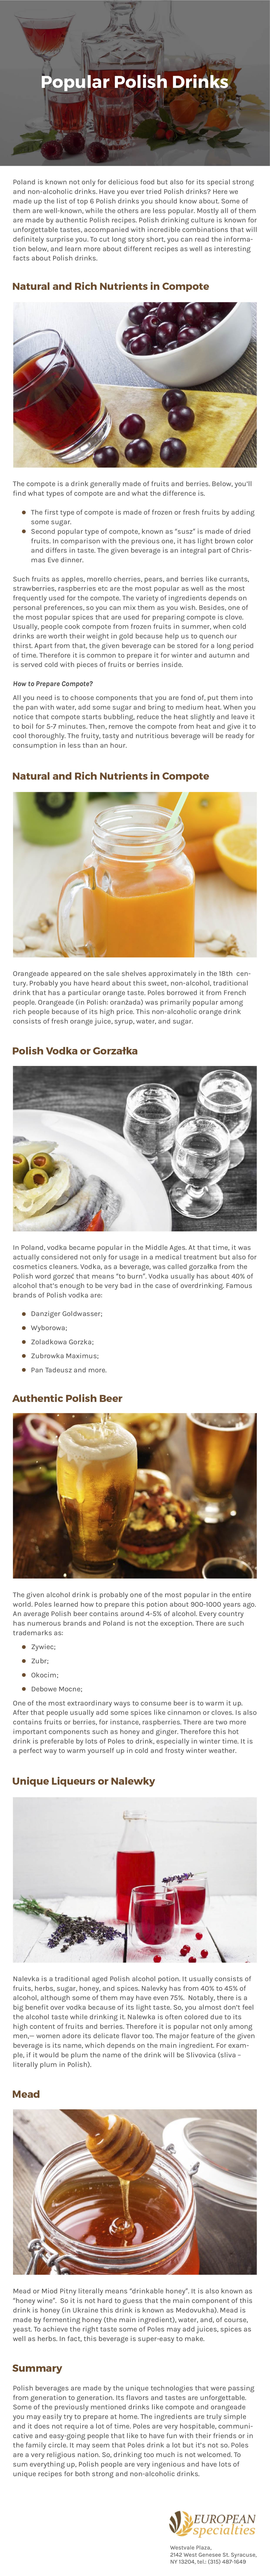 popular_polish_drinks